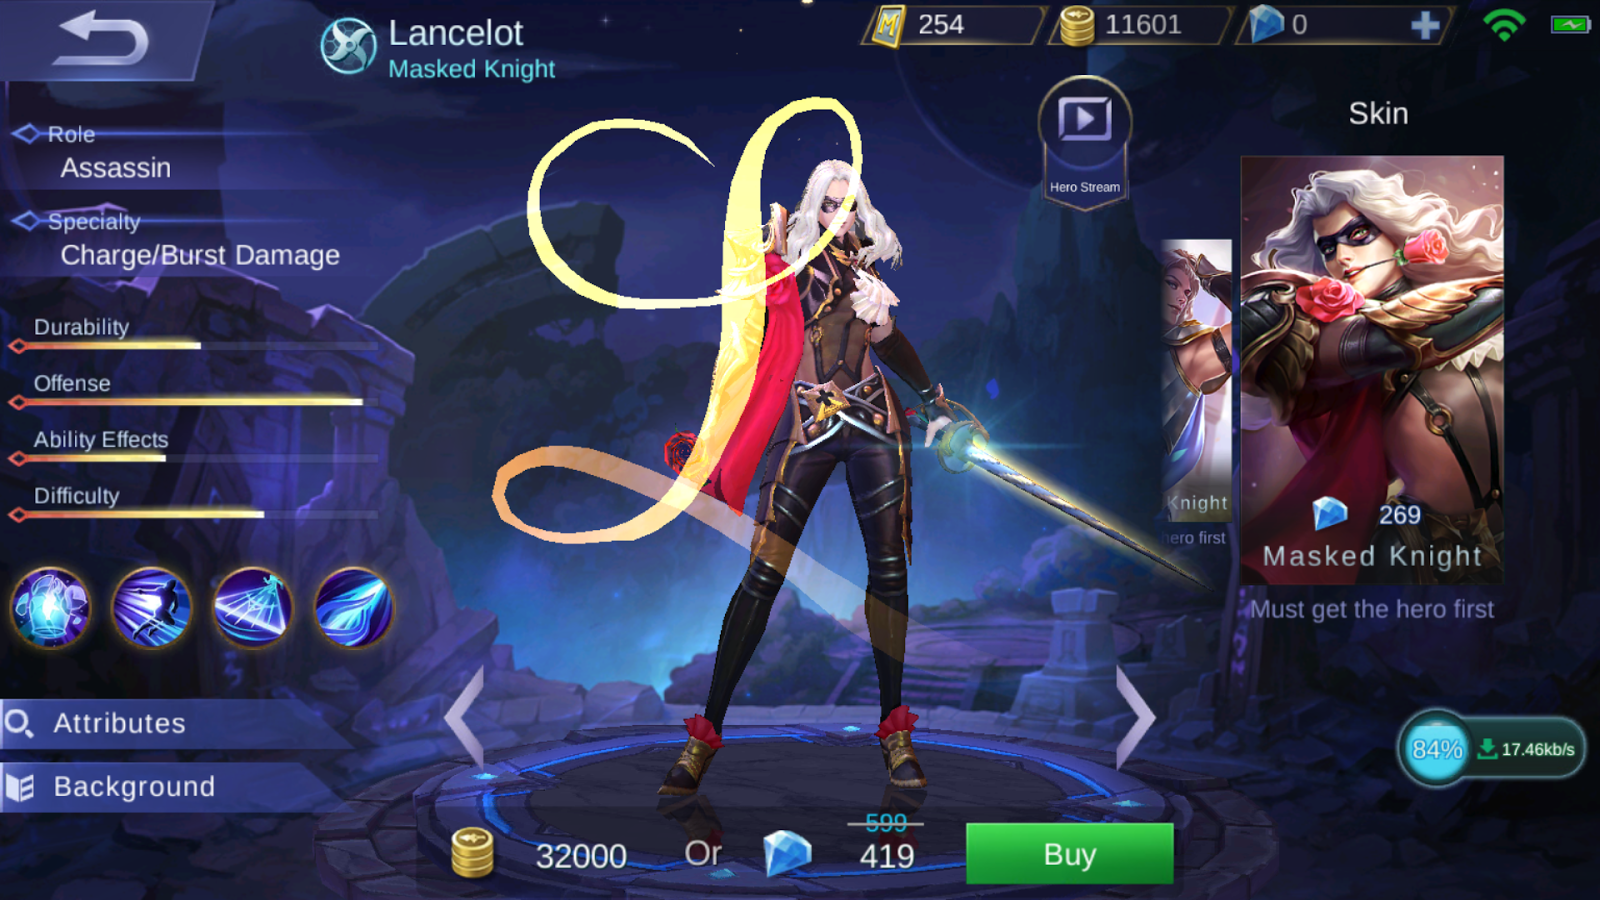 Wallpaper Bergerak Mobile Legends Gif